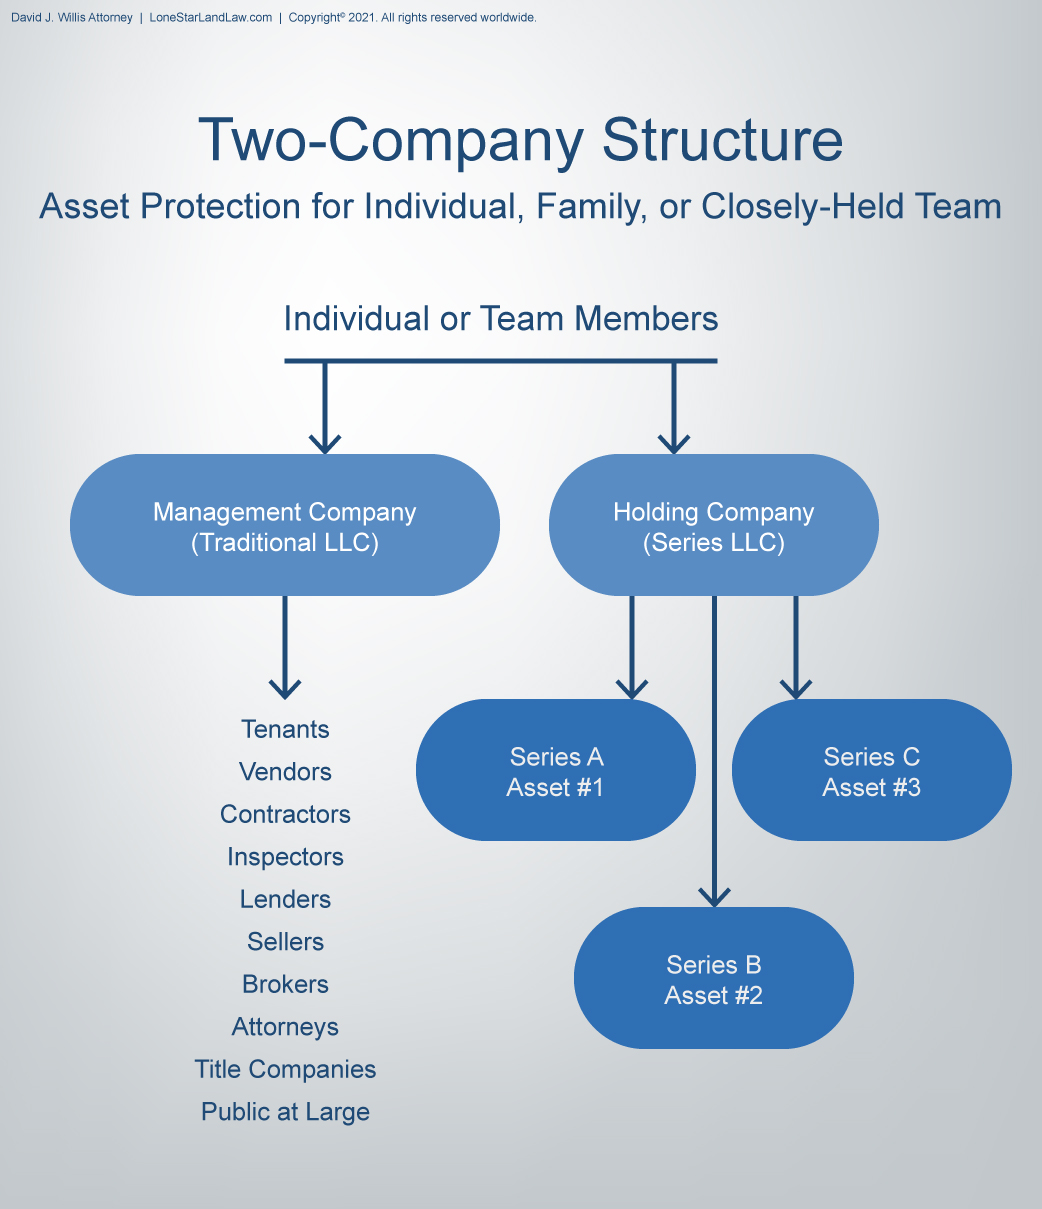 Asset Protection Graphic - Two Company Structure